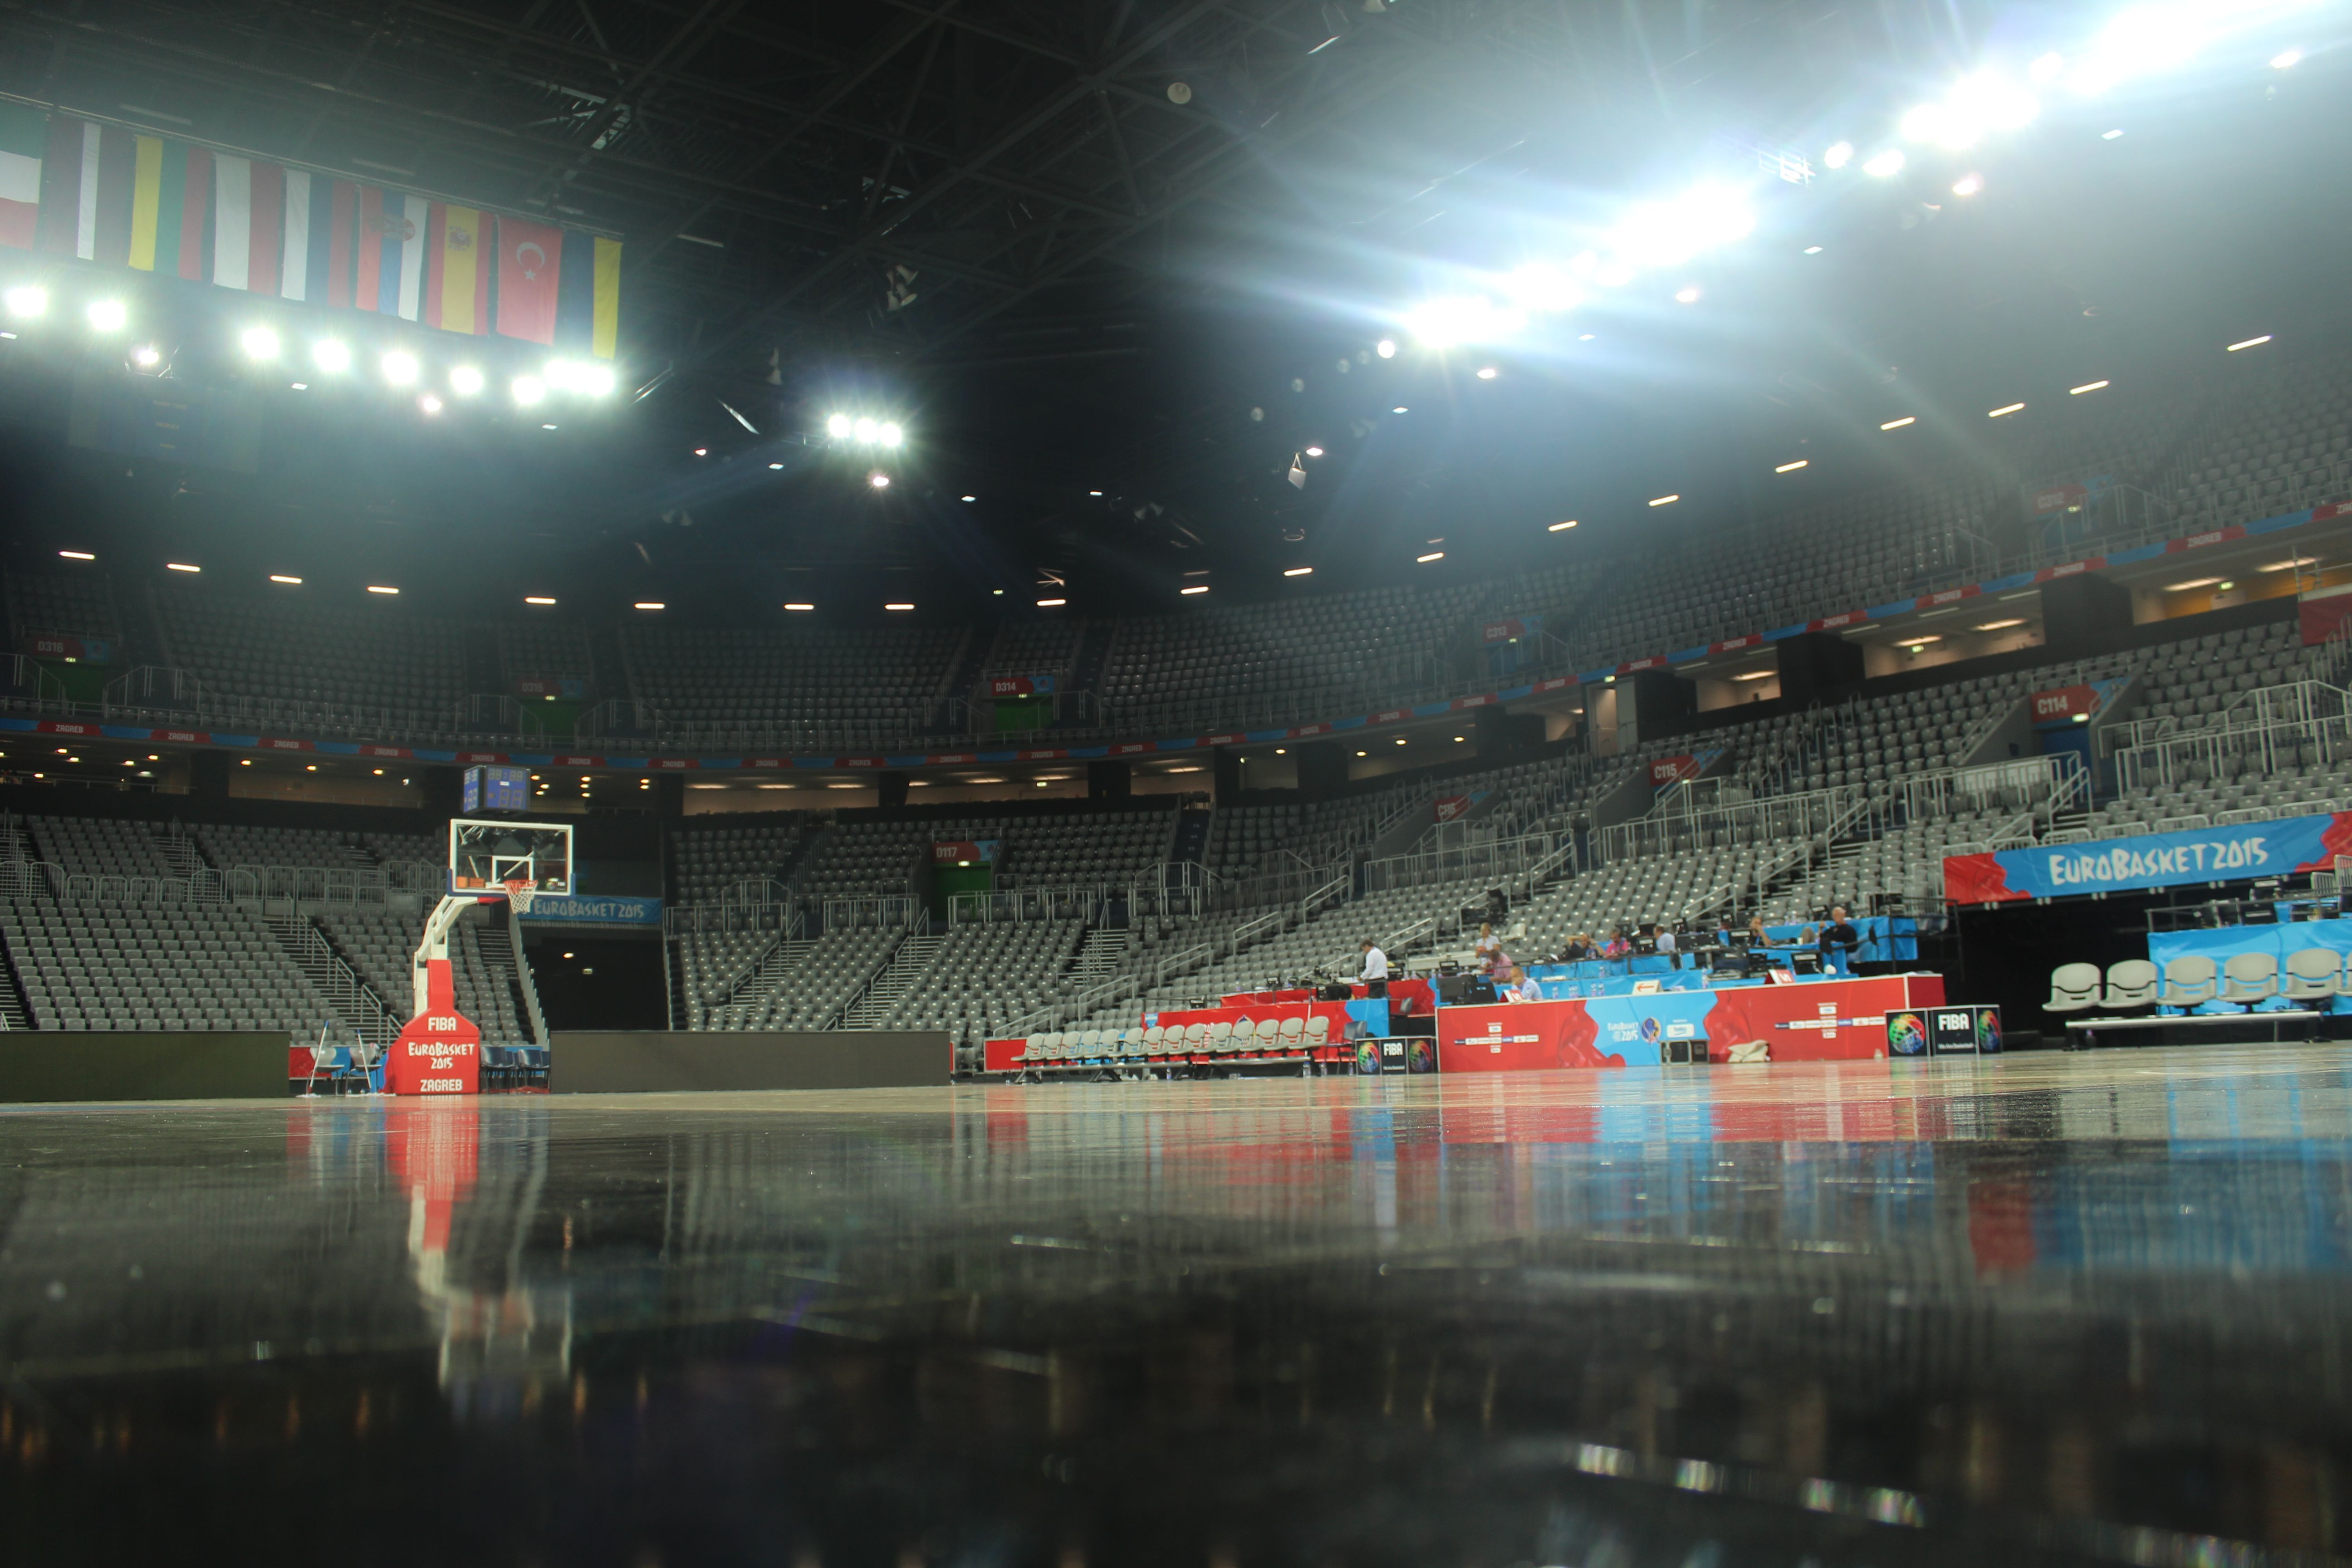 Eurobasket 2015 Arena Zagreb In This Moment Zagreb Places To Go